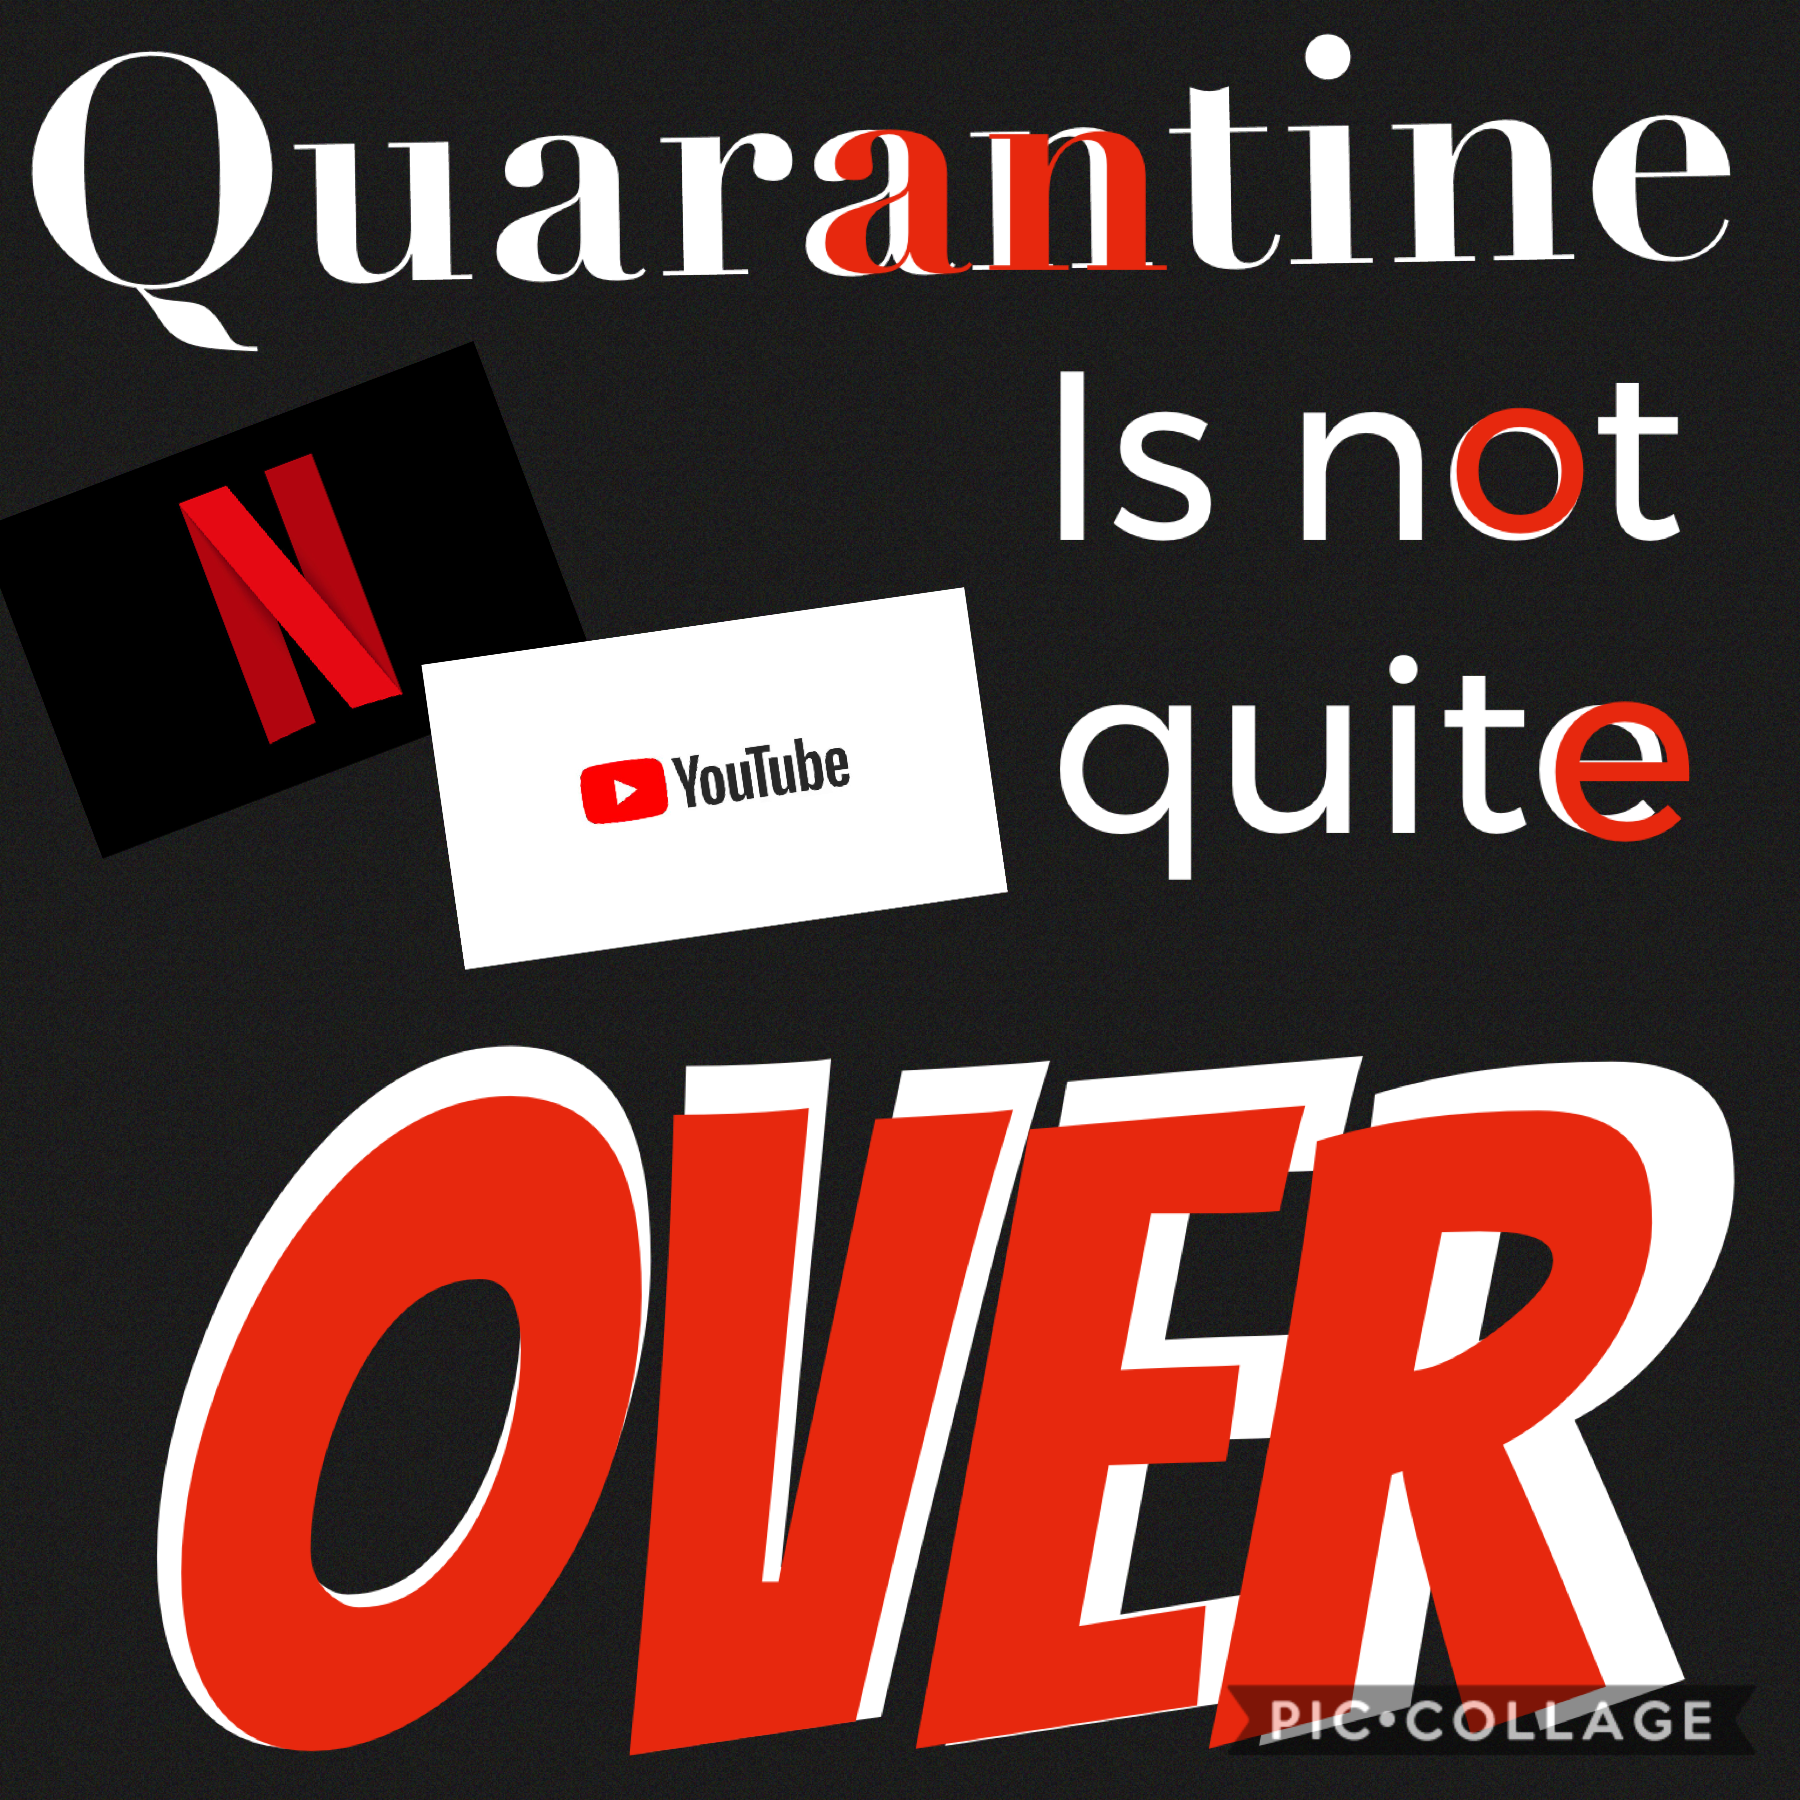 Quarantine is not quite over; Hang in there! I have been watching the Holderness family's songs on youtube- you should try watch them to! #StaySafe